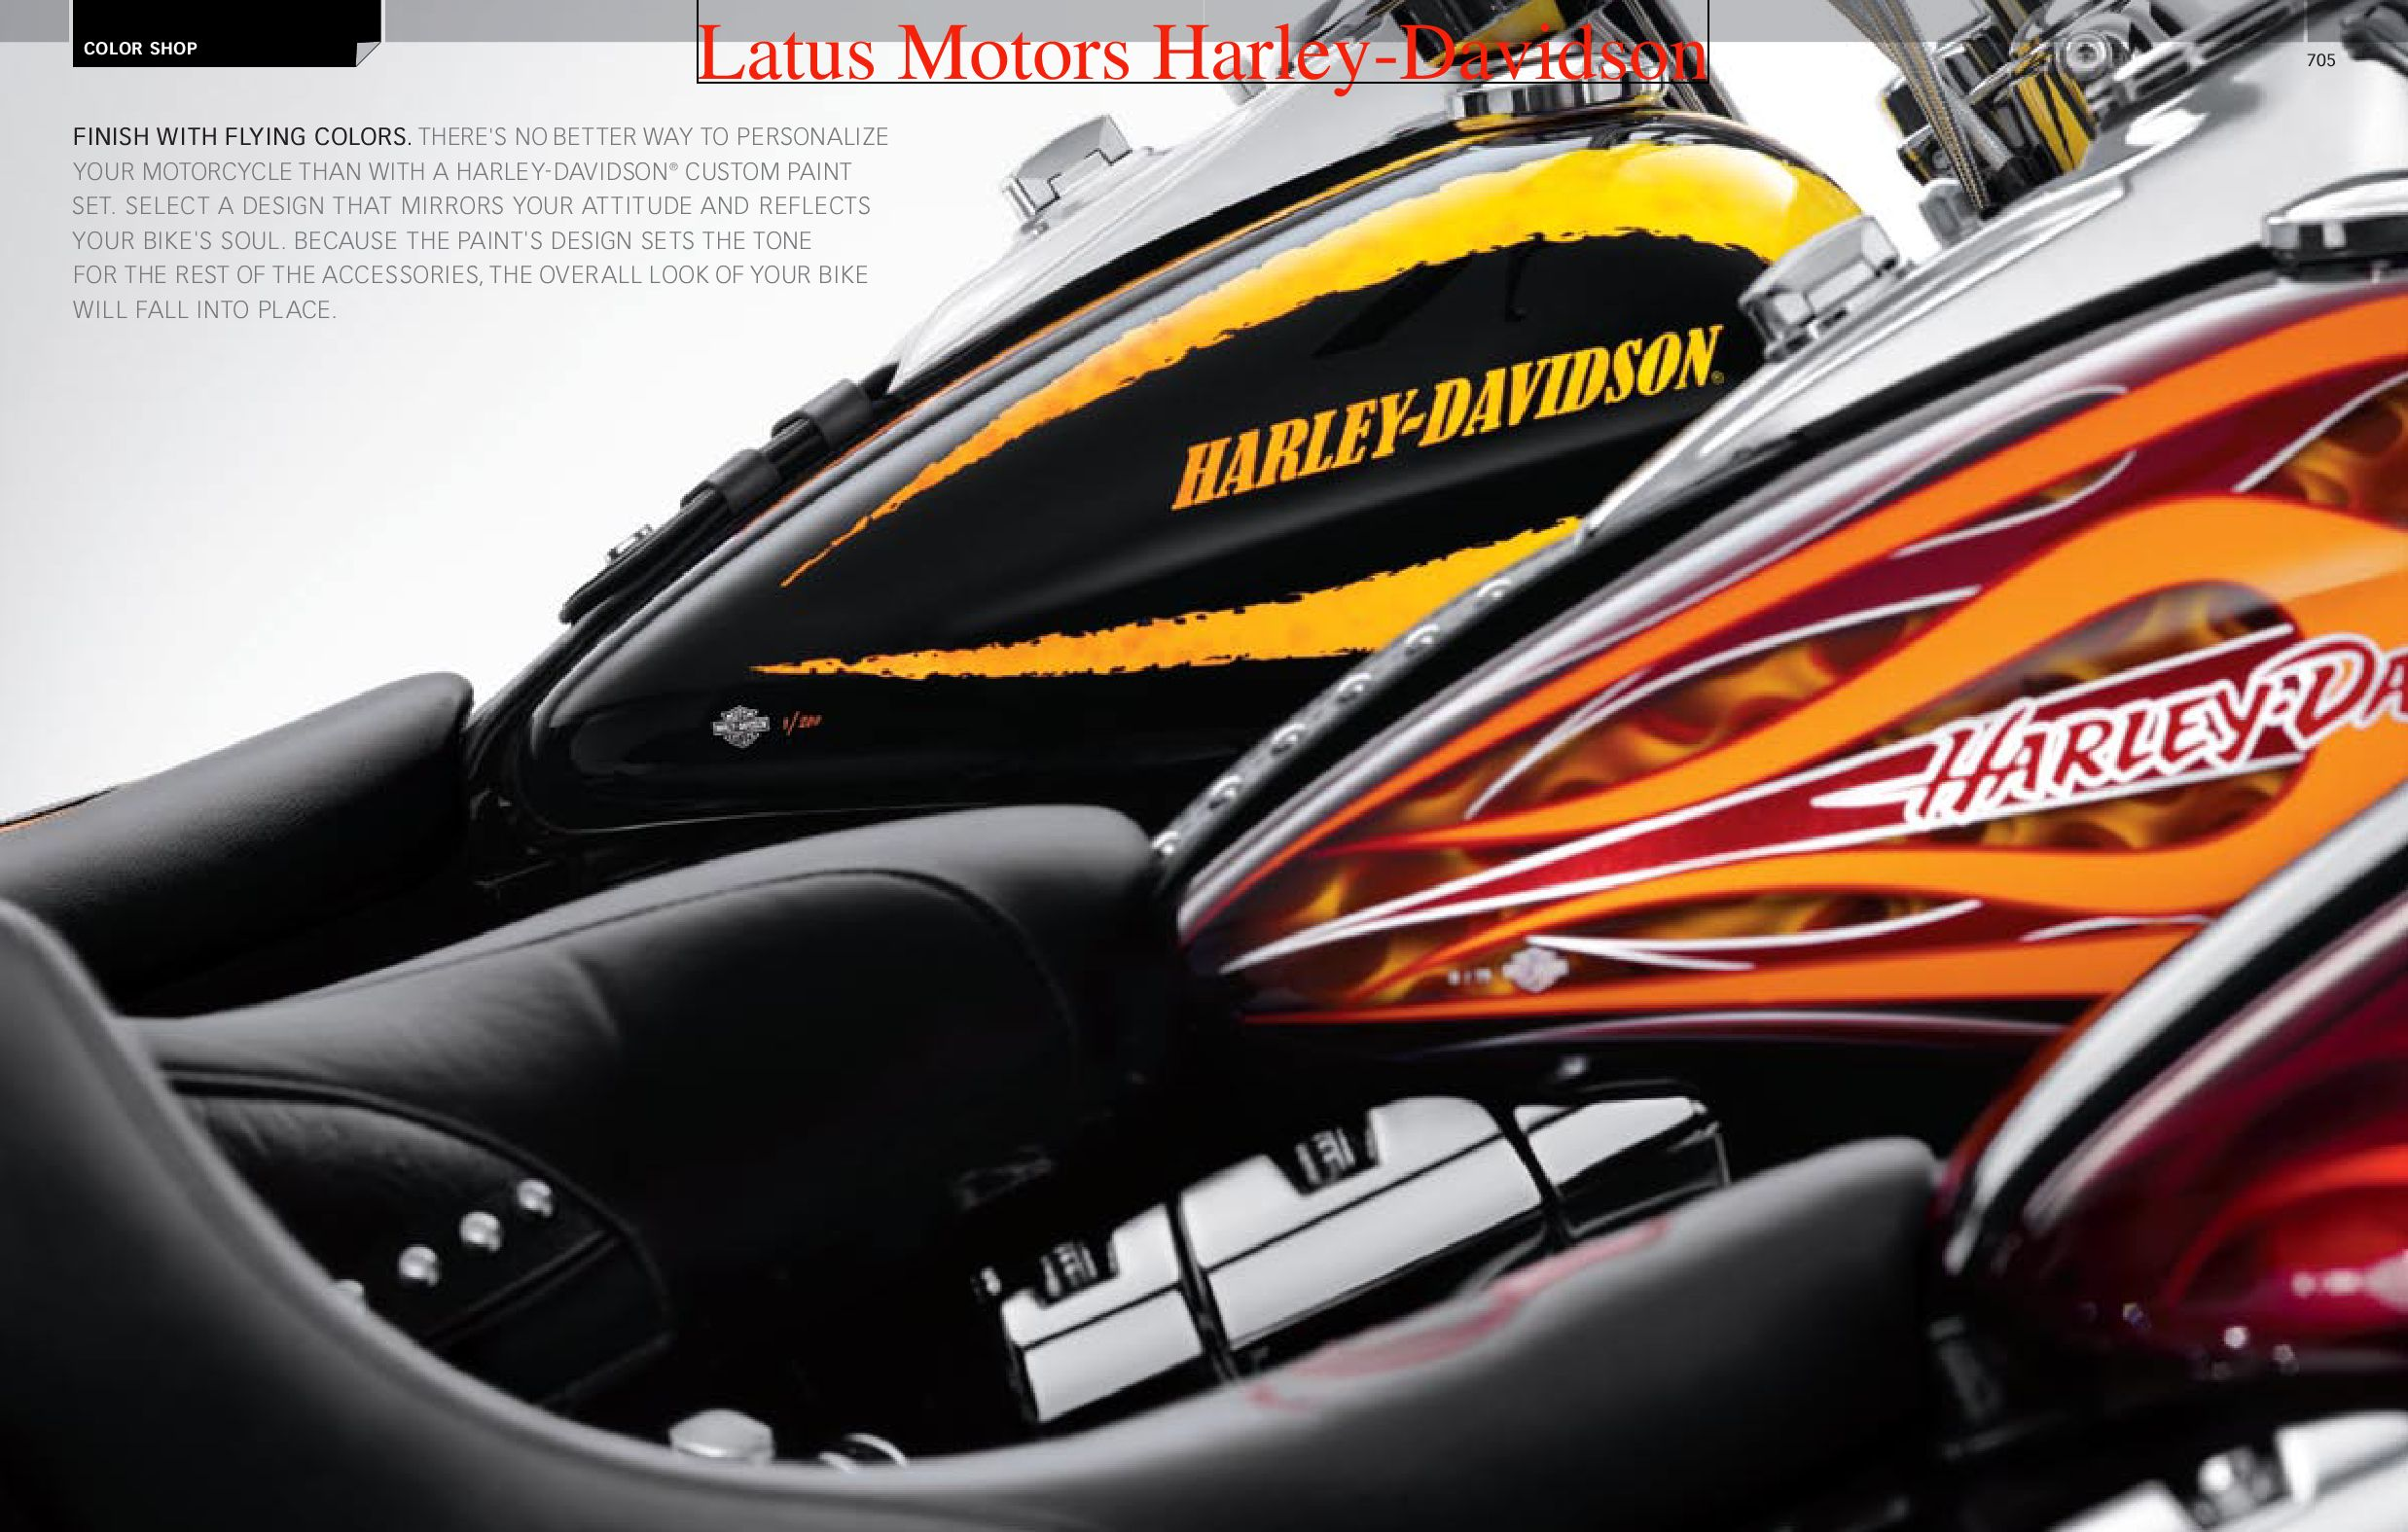 Harley Davidson Portland >> Harley-Davidson Color Shop Catalog by Harley-Davidson of ...